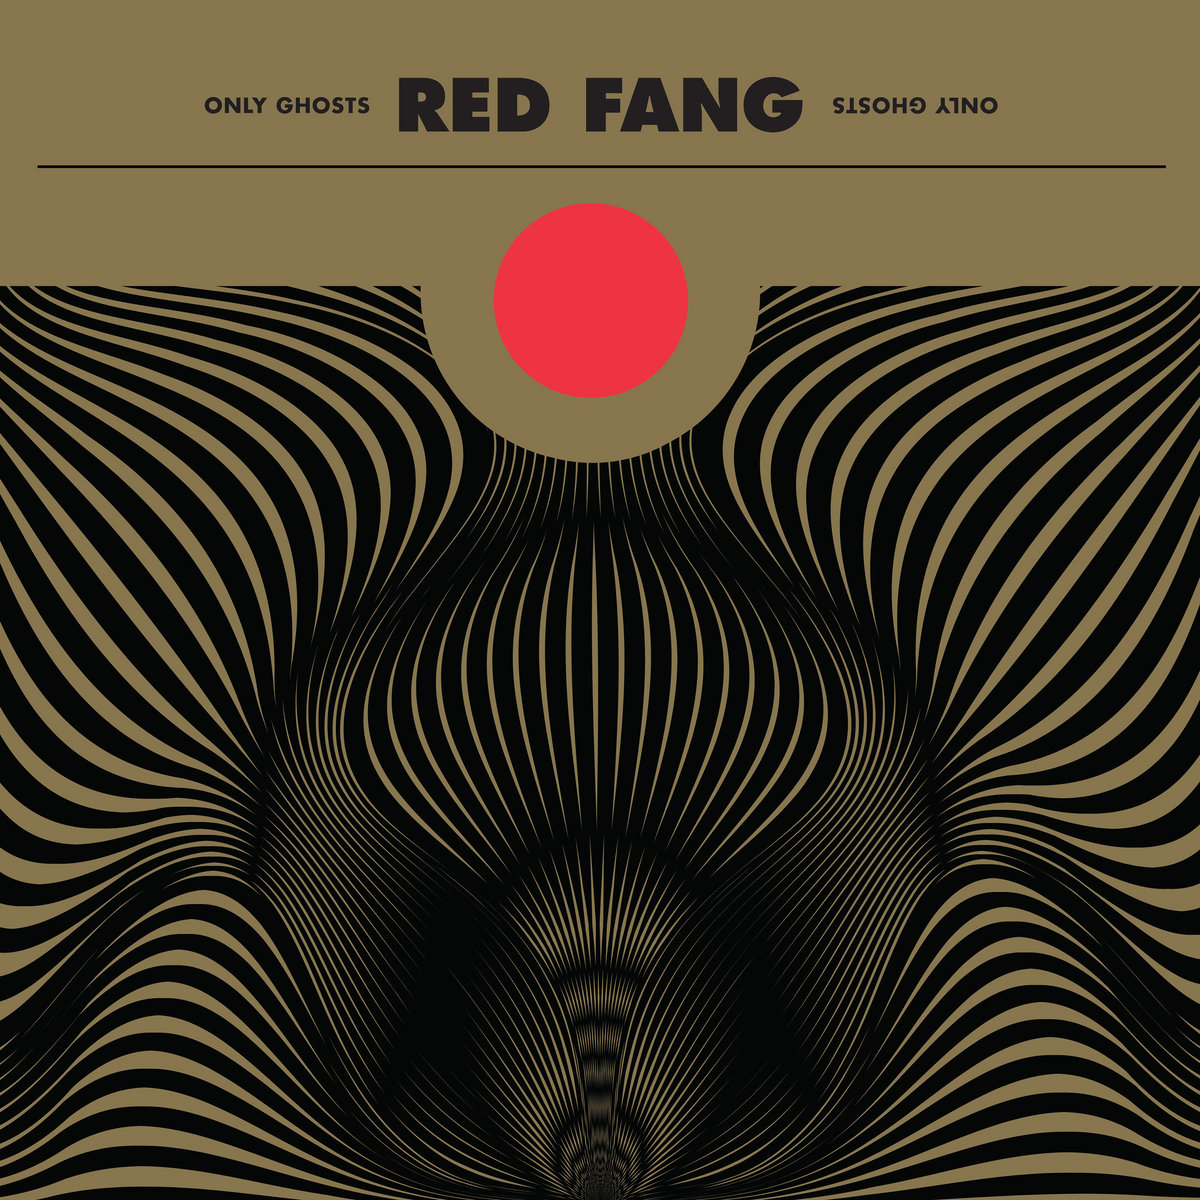 Image result for red fang only ghosts